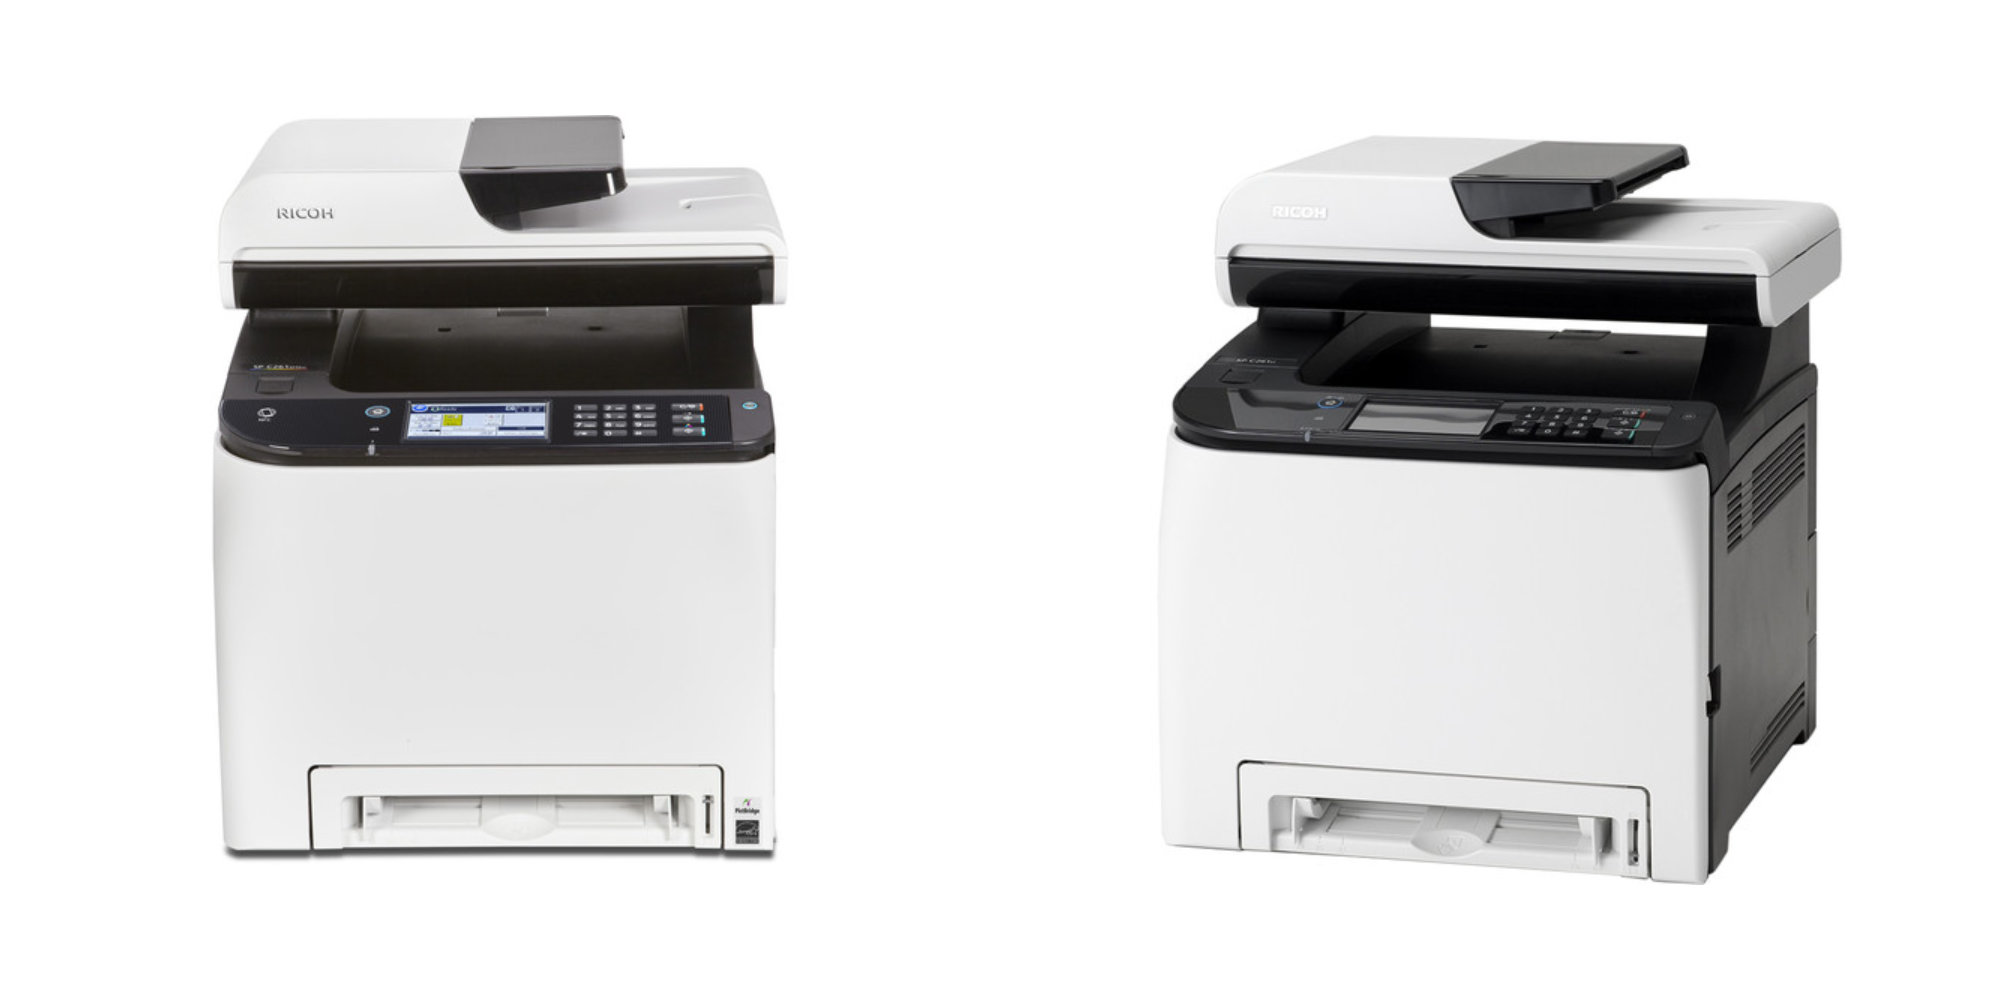 Ricoh's Color Laser Printer has AirPrint, 21 ppm speeds, more for a matched low of $140 (Save $50)